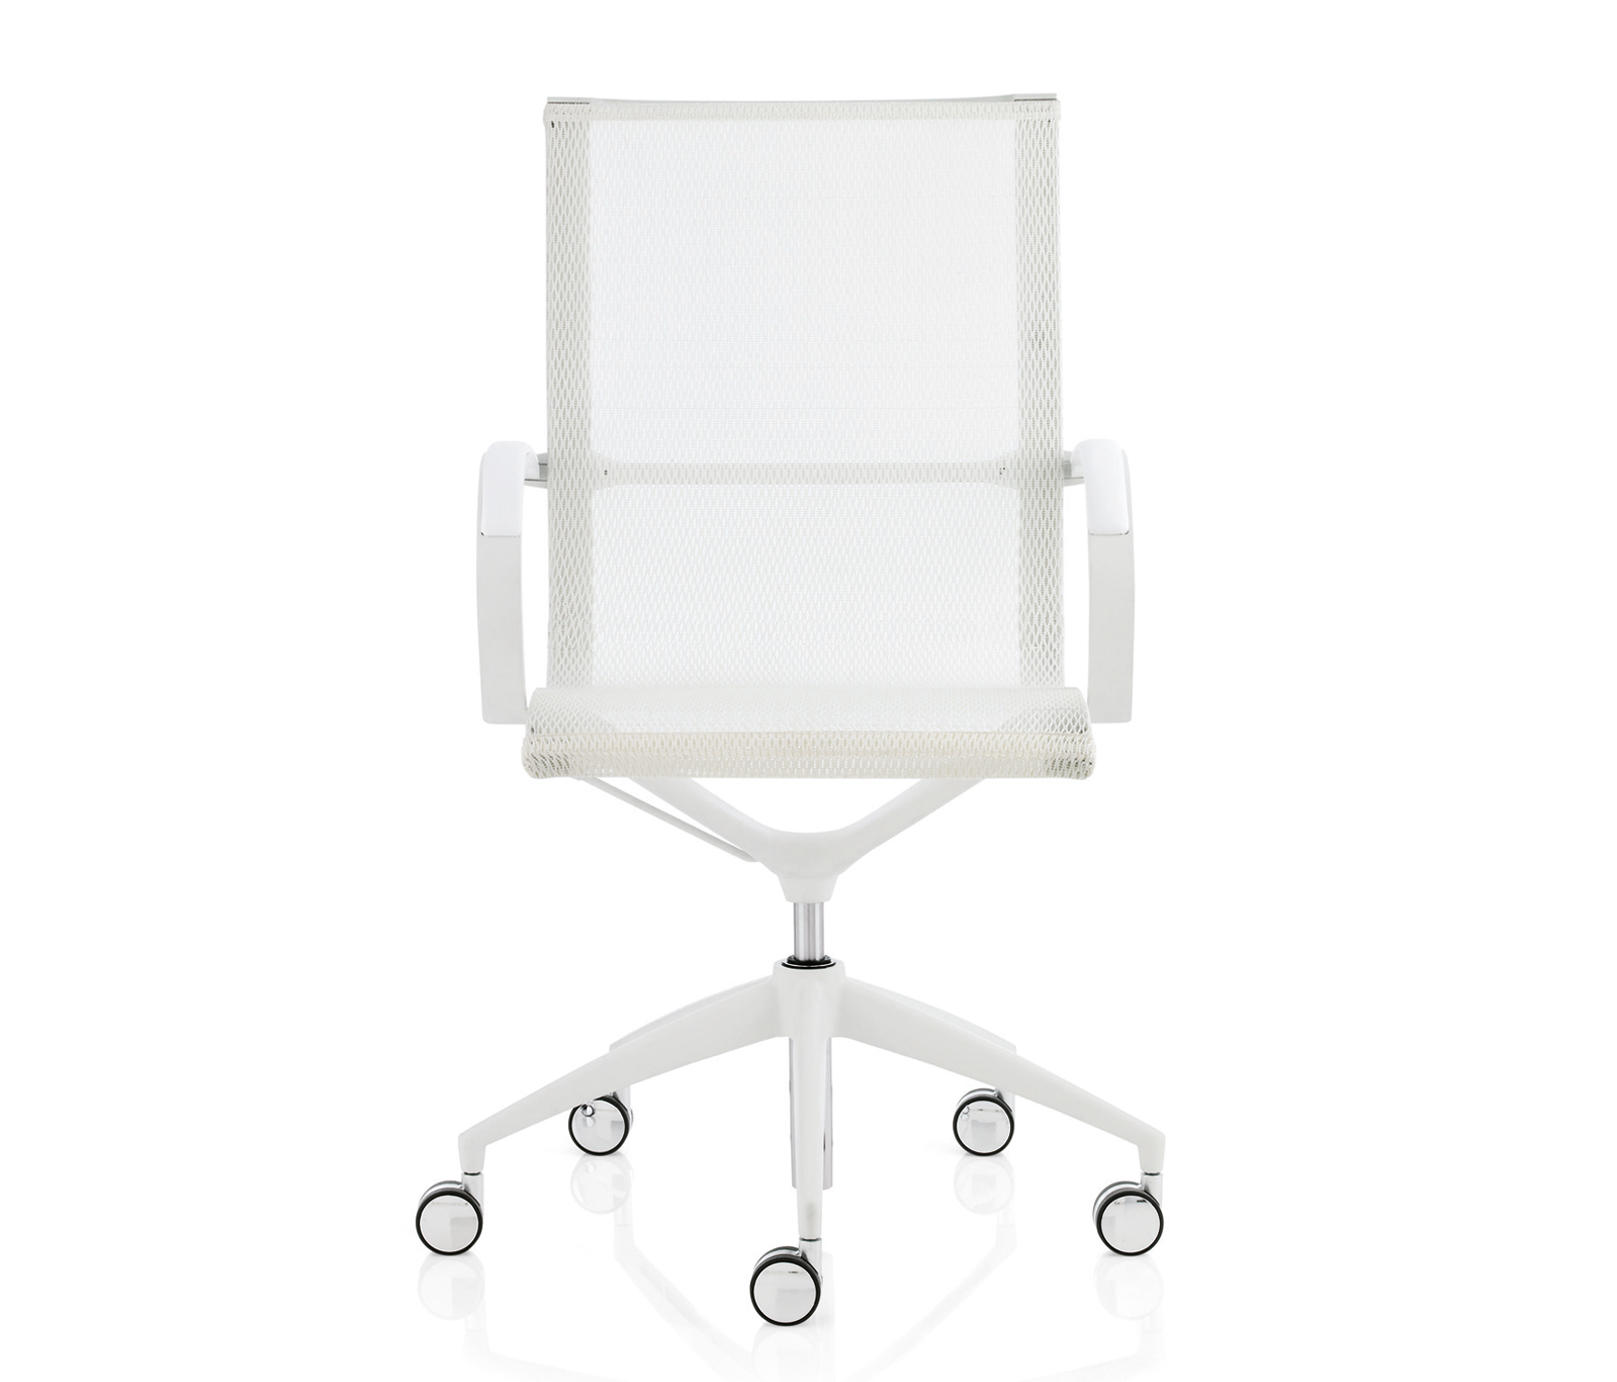 swivel chair em portugues spandex cover rental 202 mesh arbeitsdrehstühle von emmegi architonic